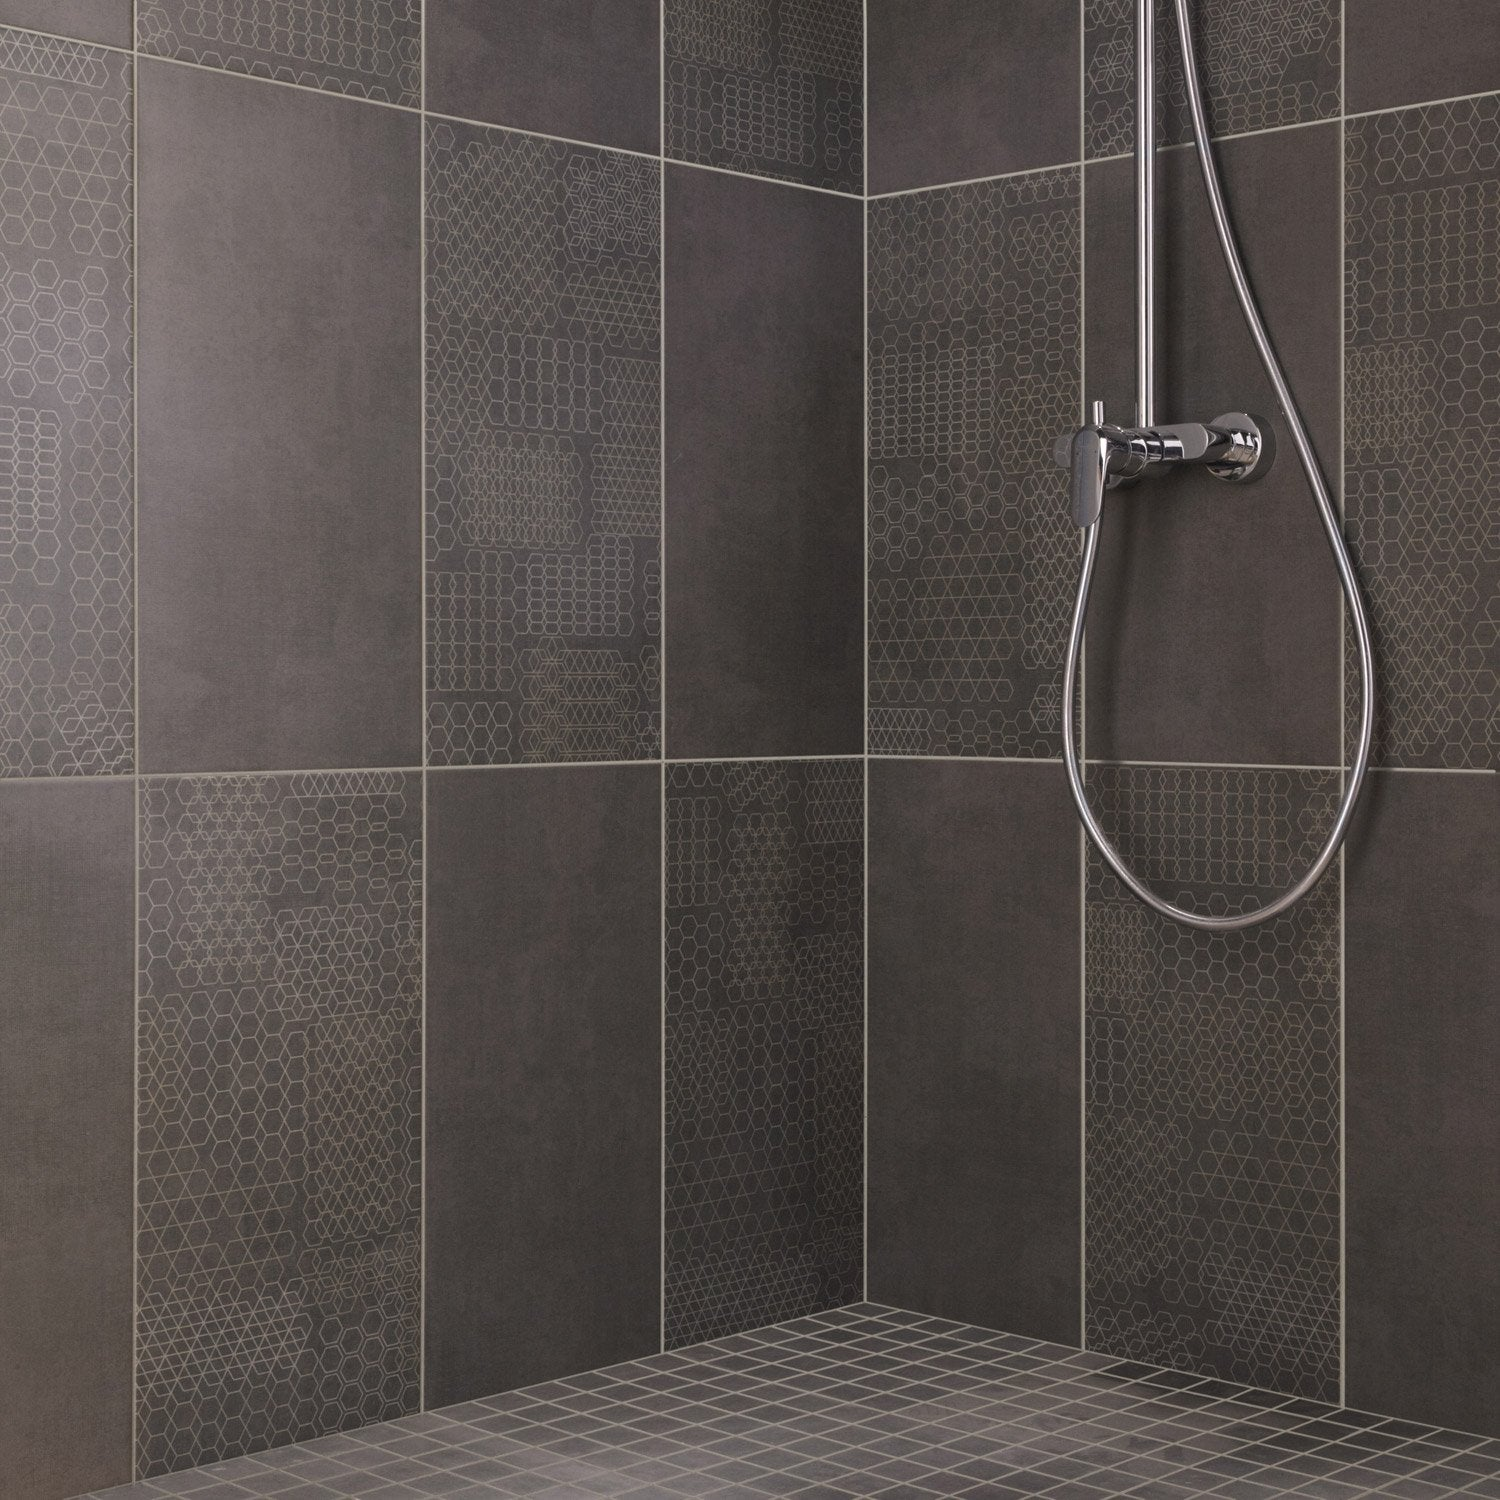 Fa ence mur anthracite tweed x cm leroy merlin for Carrelage salle de bain gris paillete